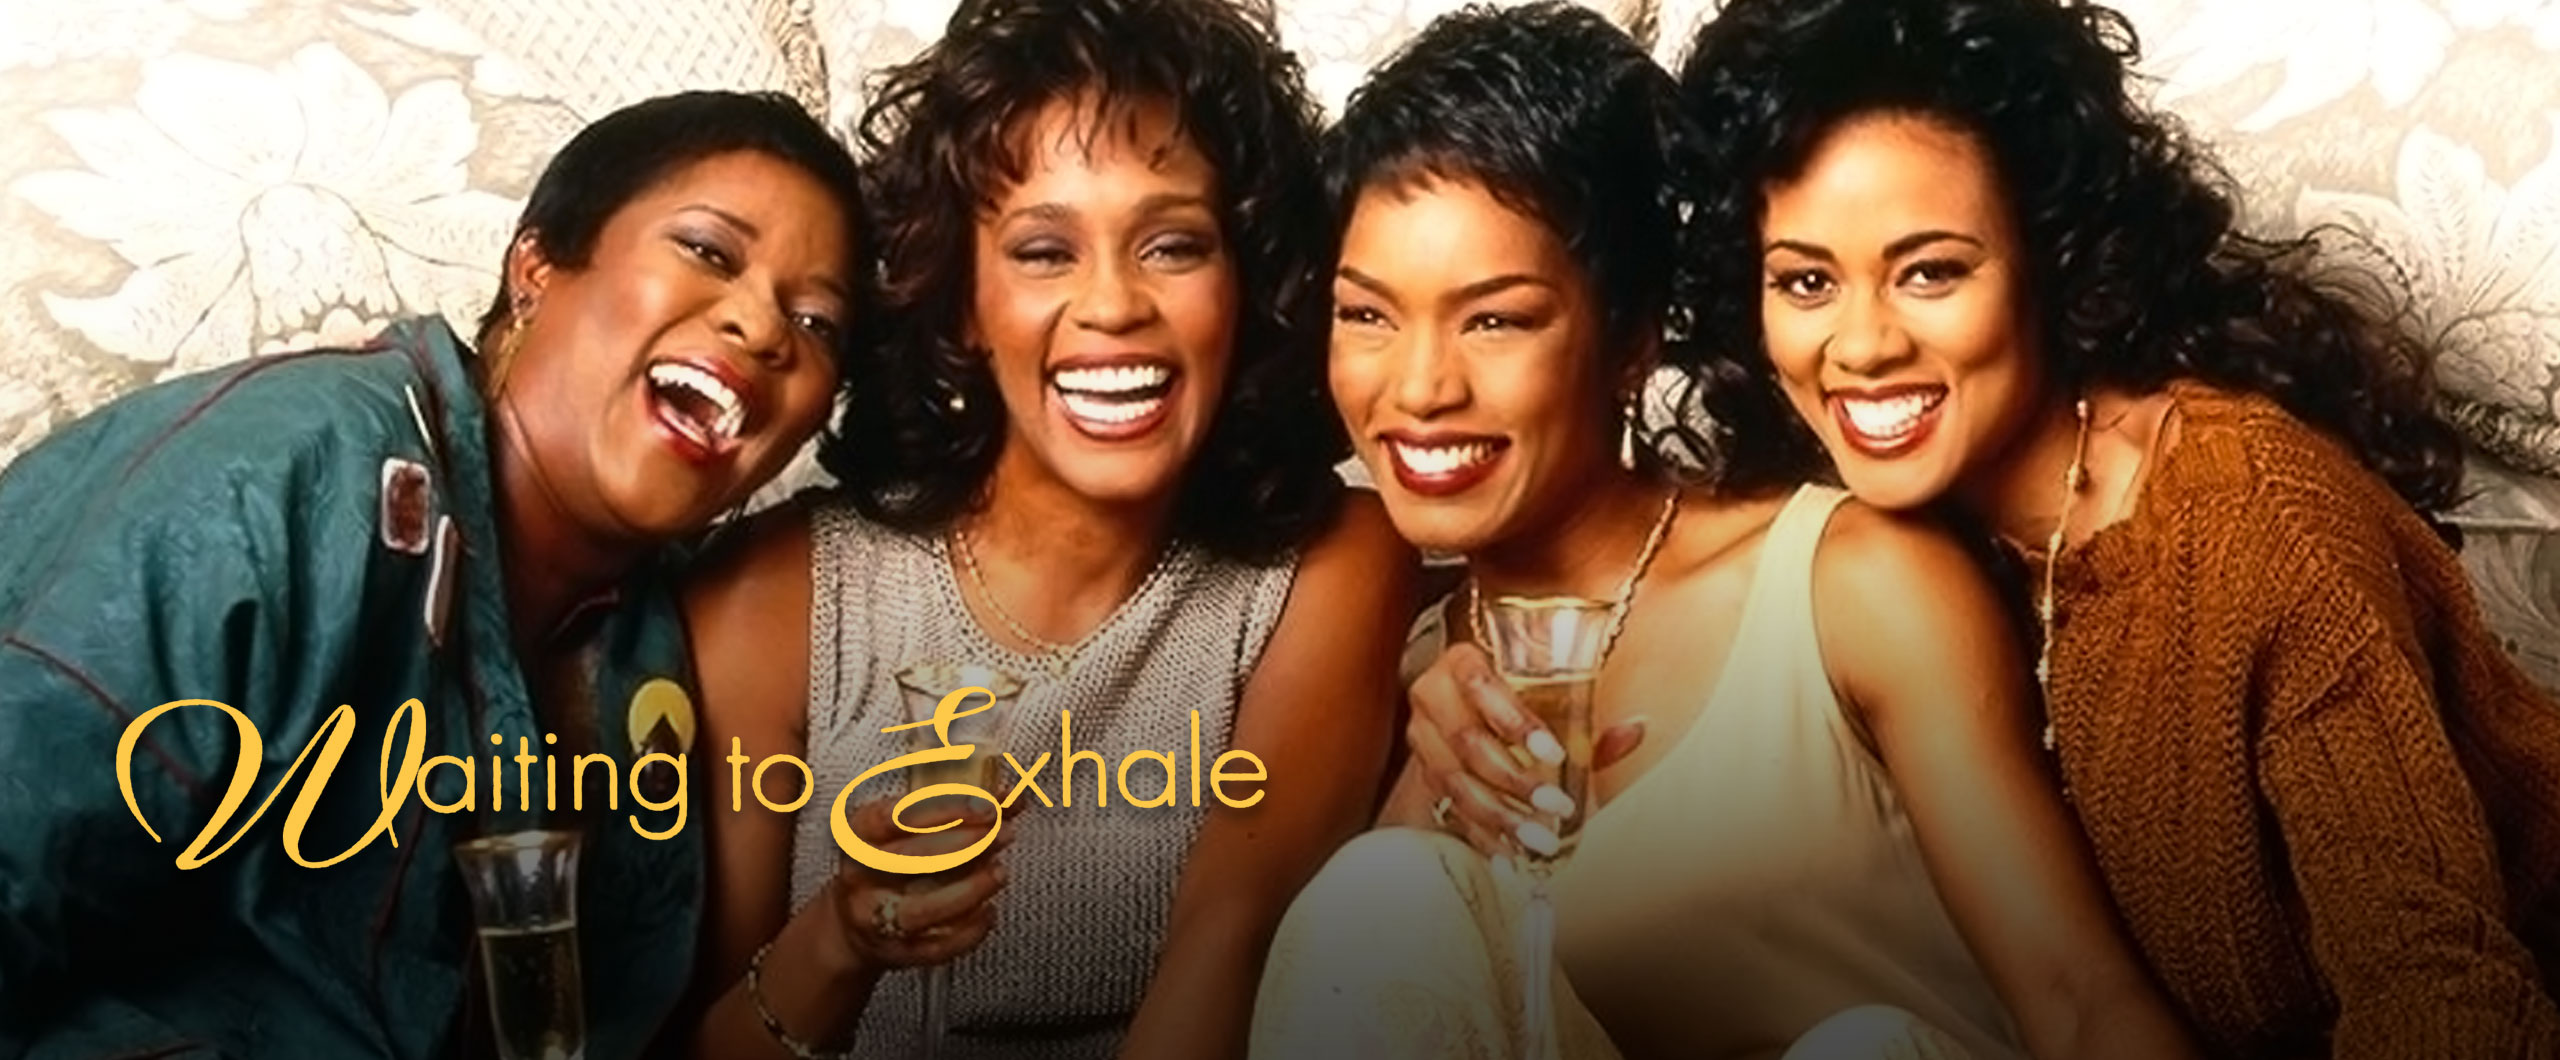 Waiting To Exhale- Saturday